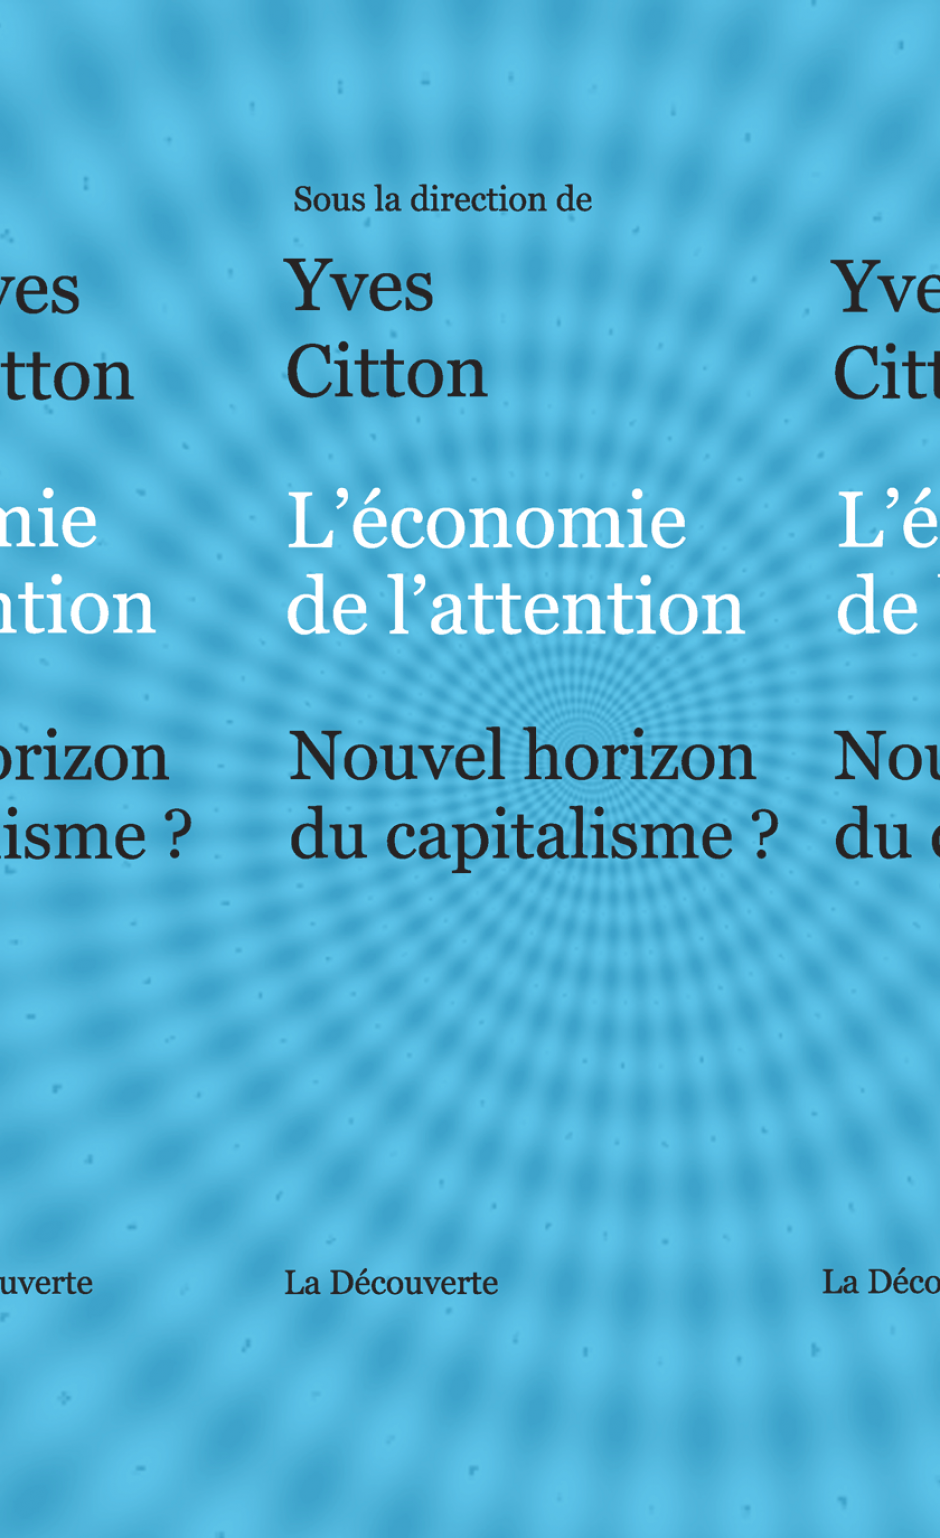 L'économie de l'attention, Yves Citton (dir.)